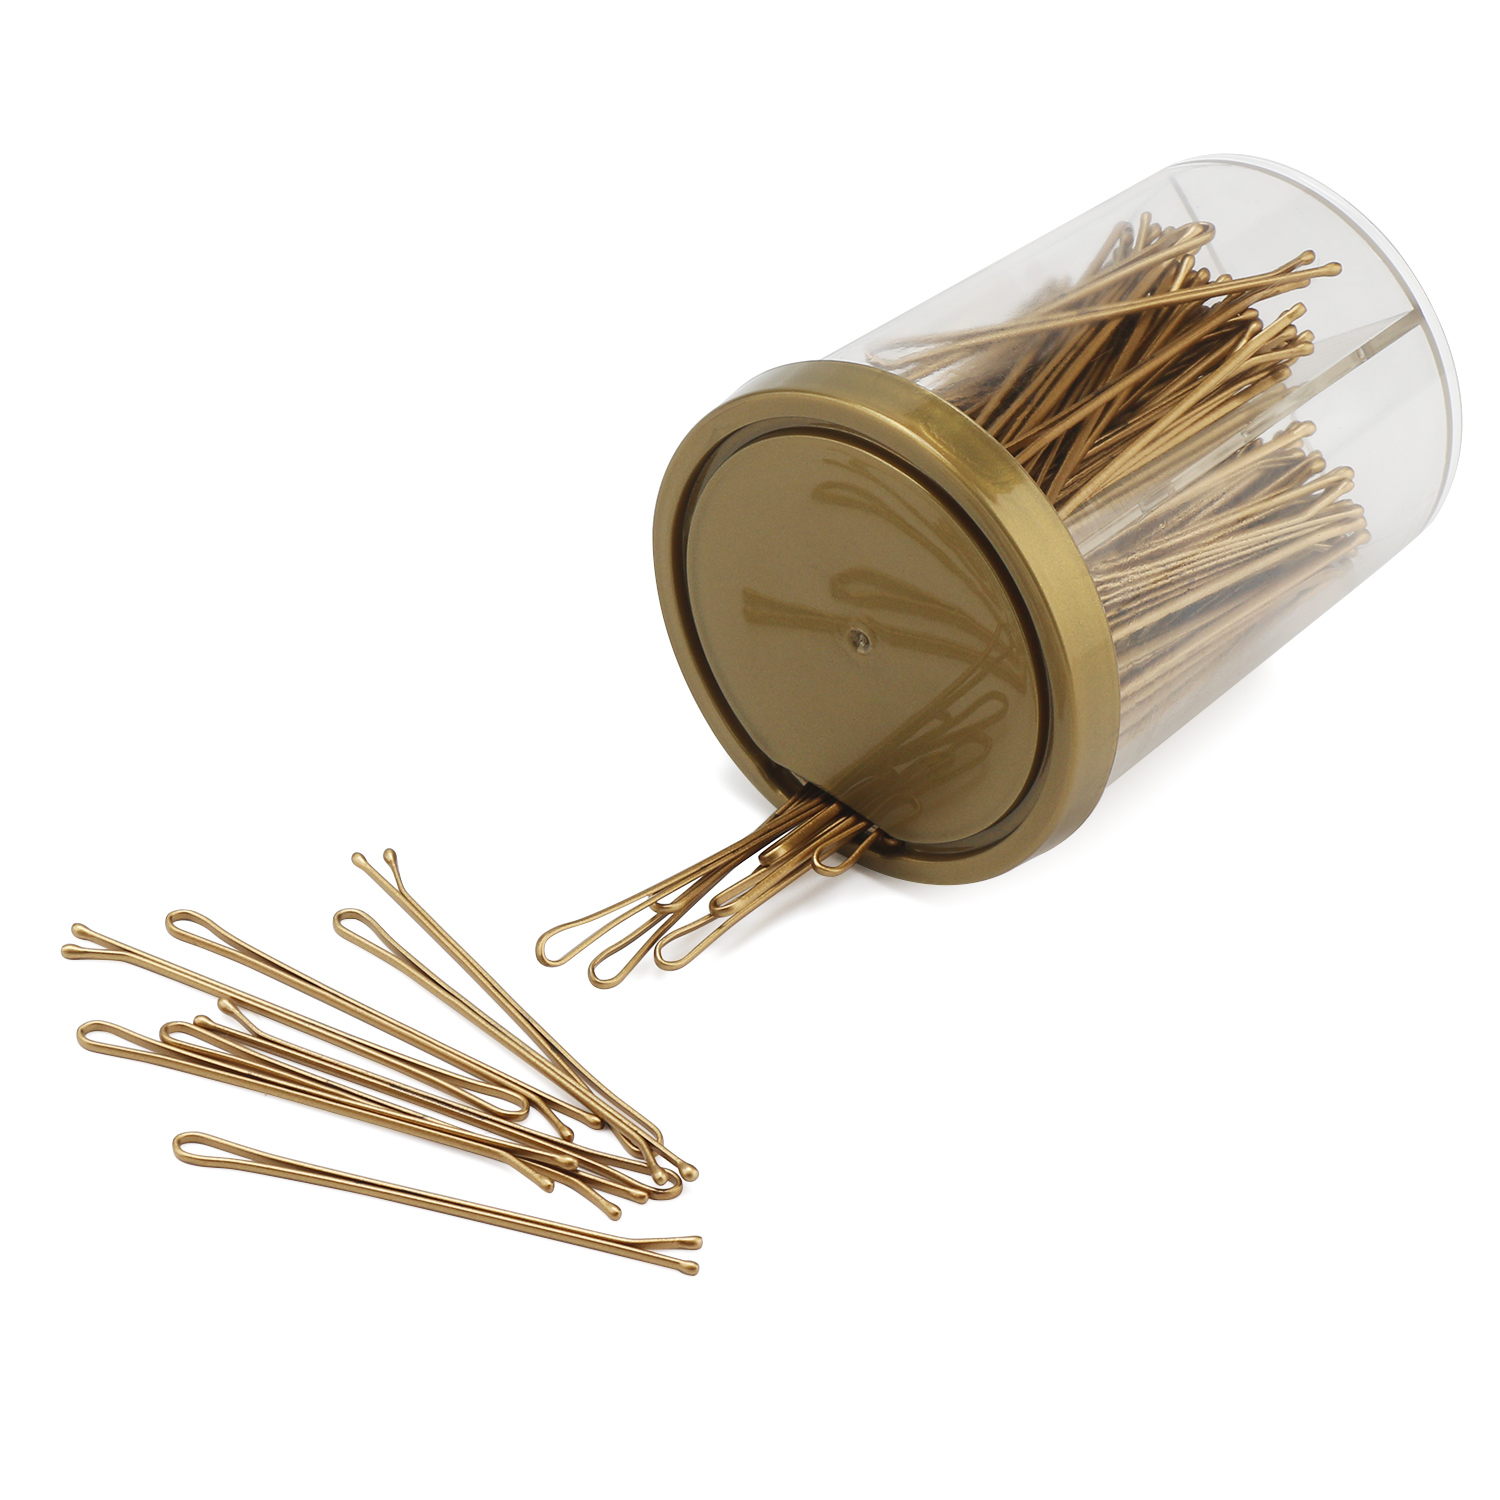 70mm Narrow Bobby Hairpin Brush Styling Essentials Pins Blonde